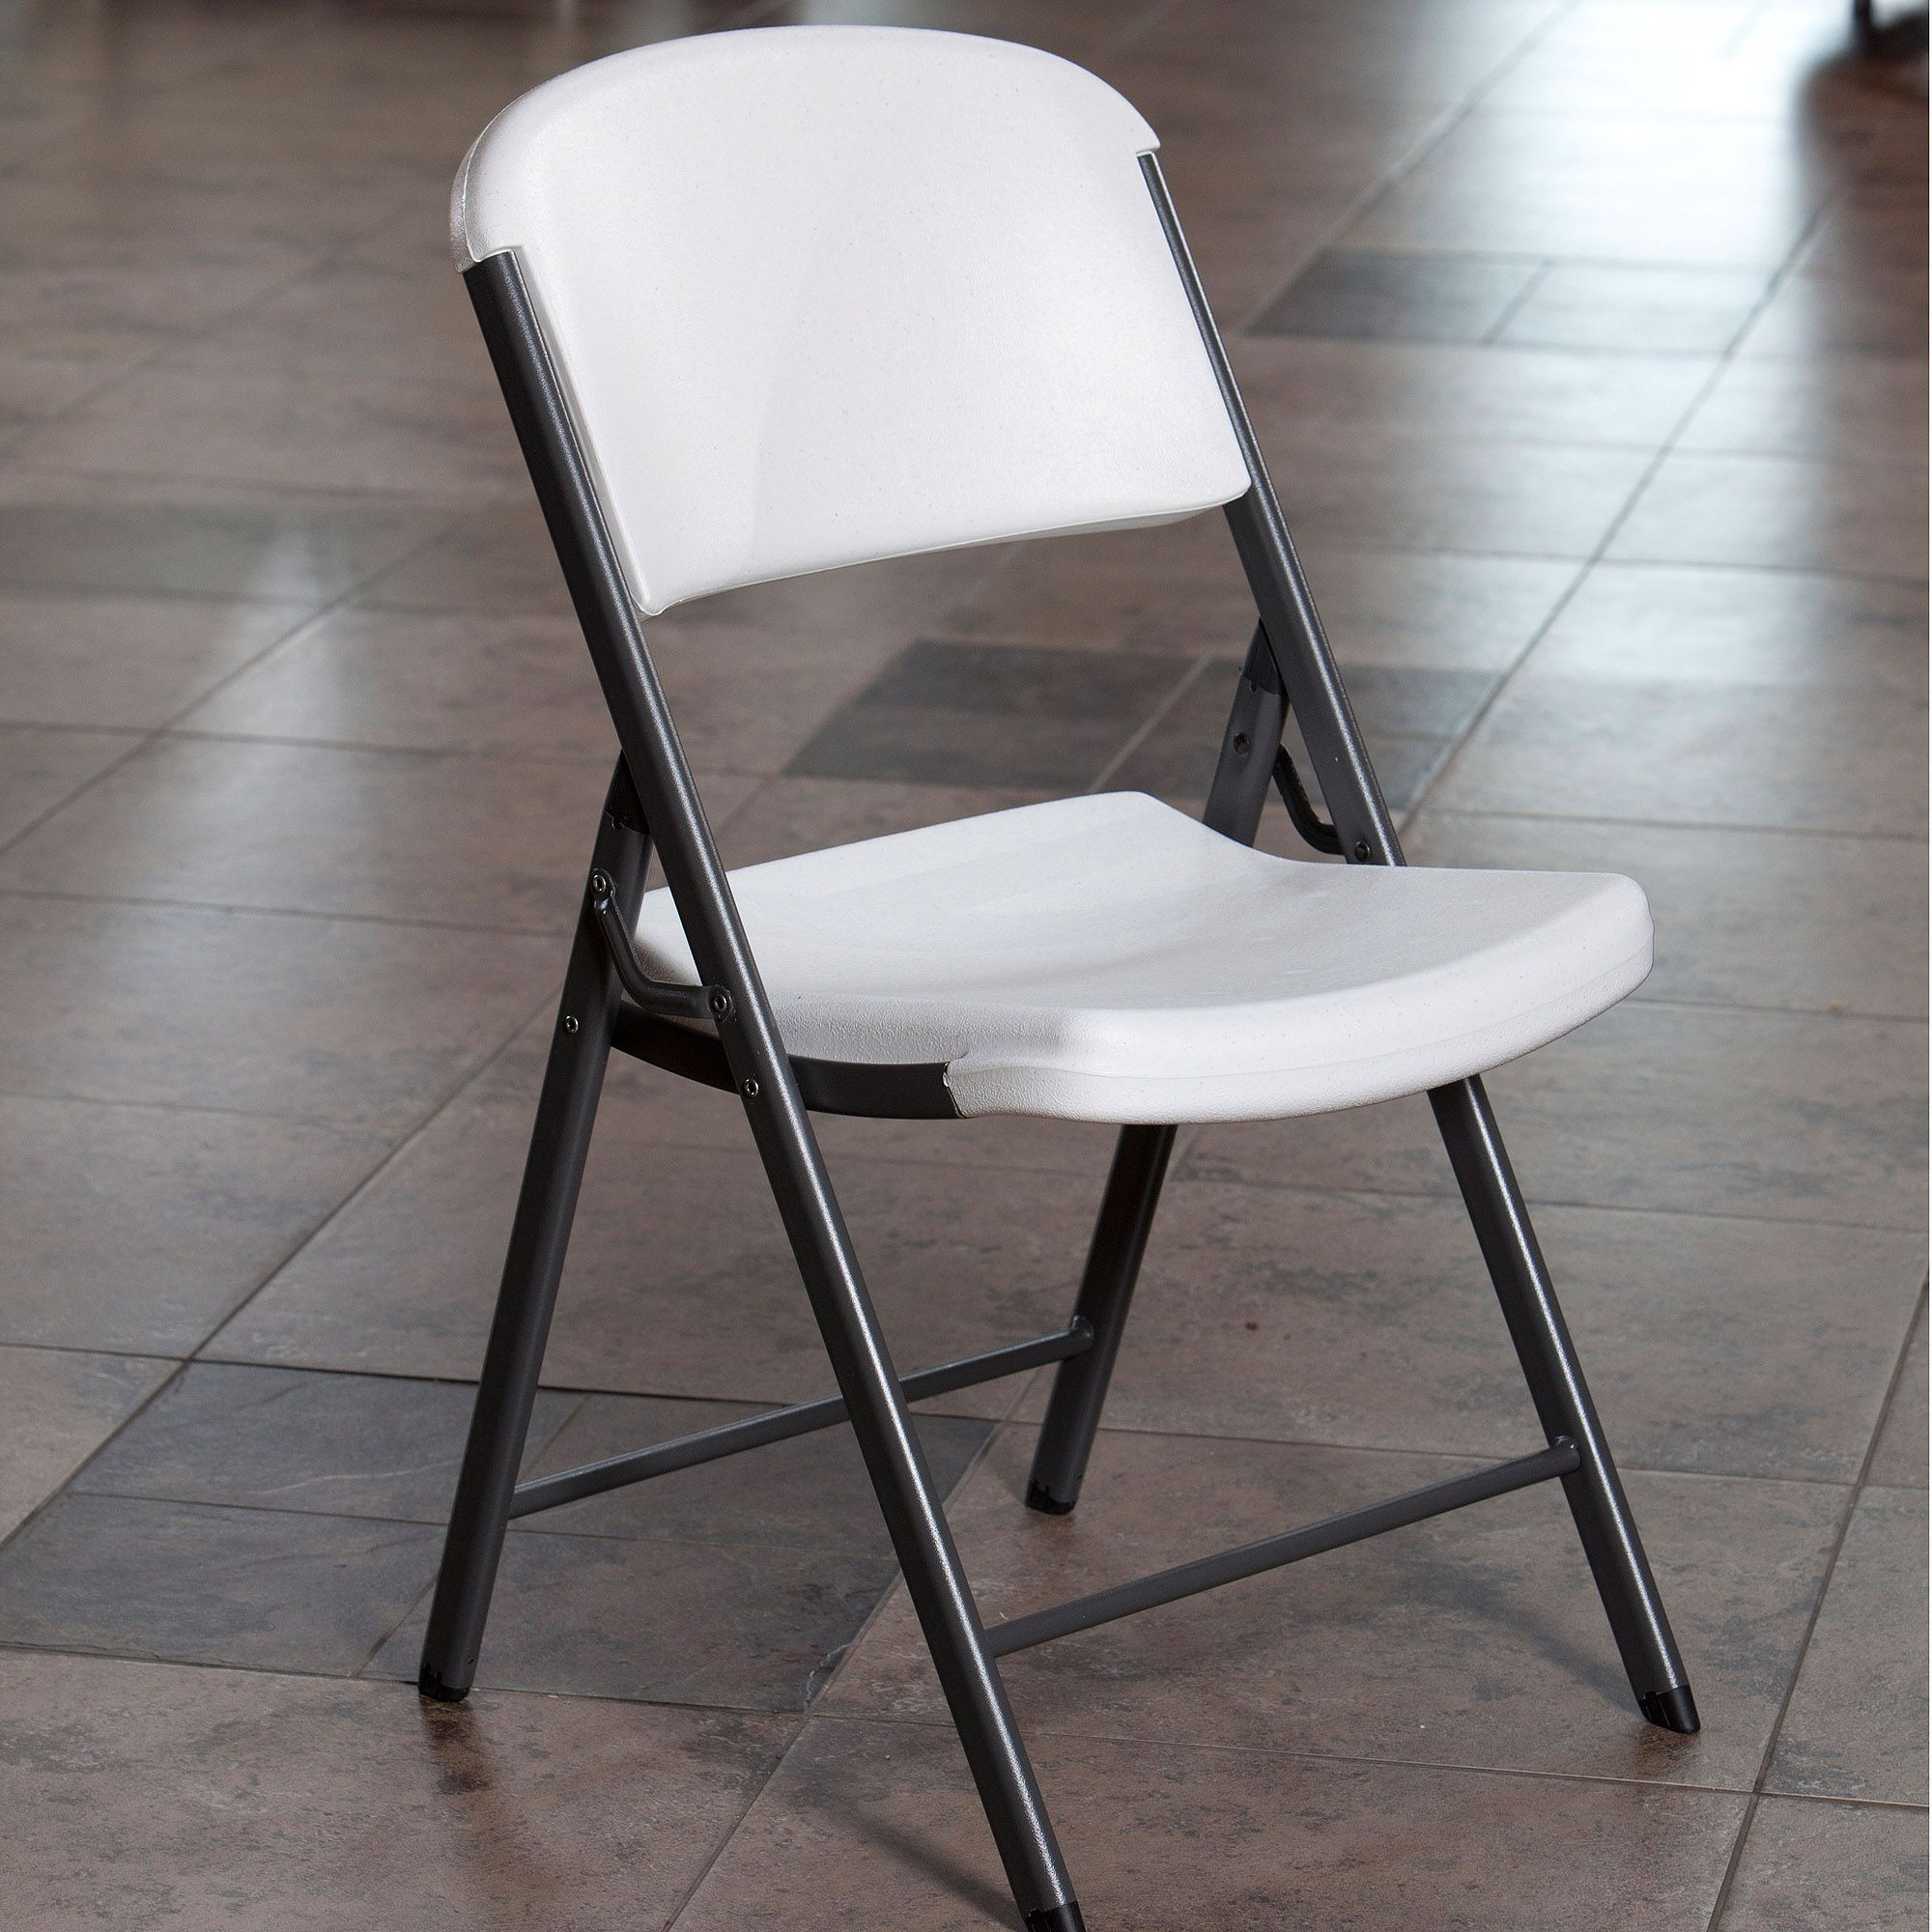 Super folding chairs just for you. in 2020